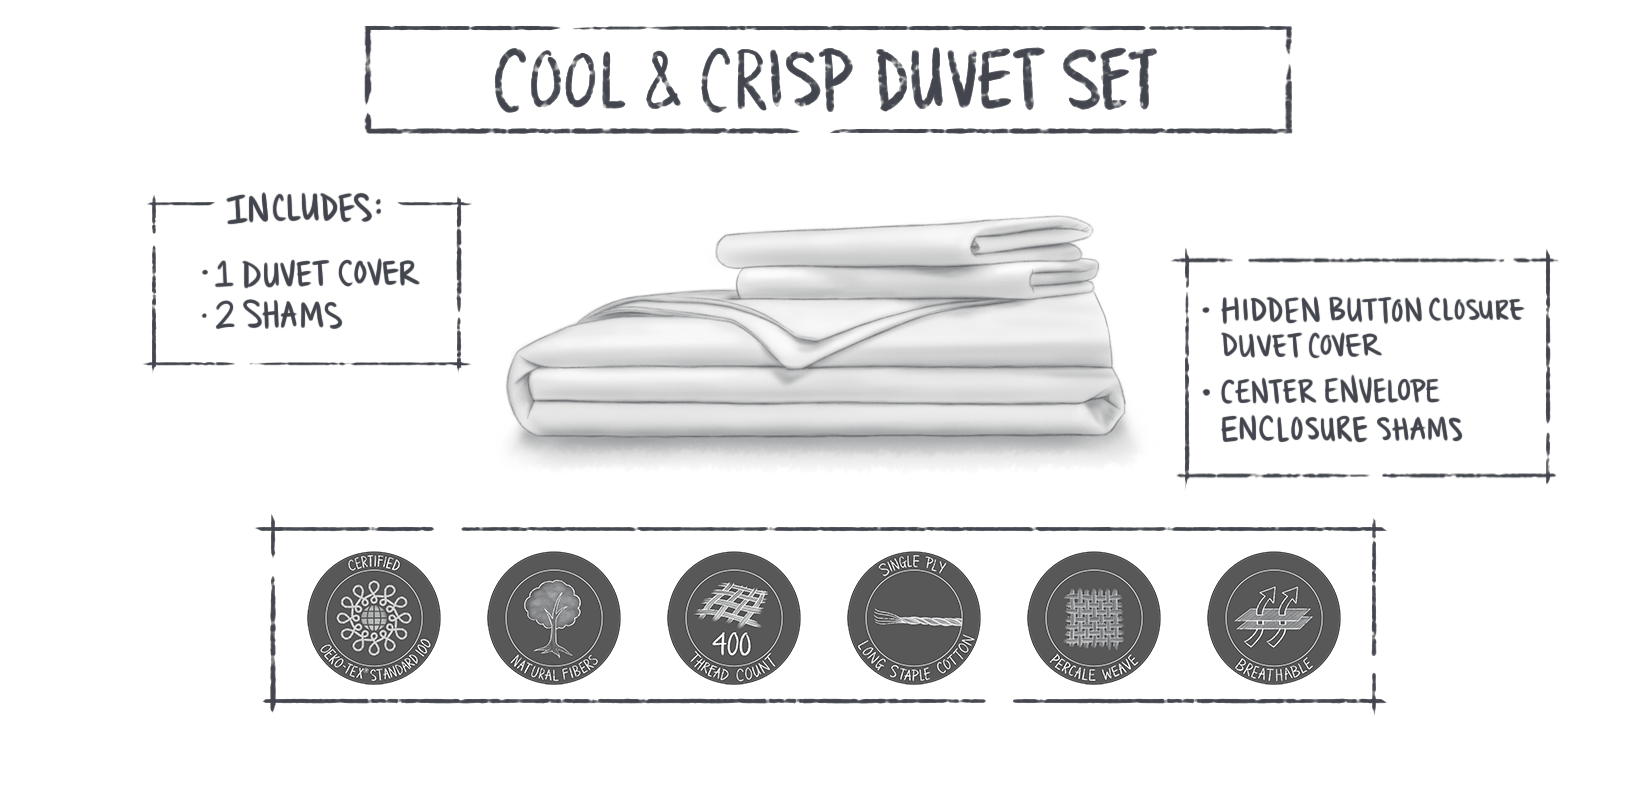 Cool and Crisp duvet set_infographic_final_Apr 06 2018_Loraine Yow-min